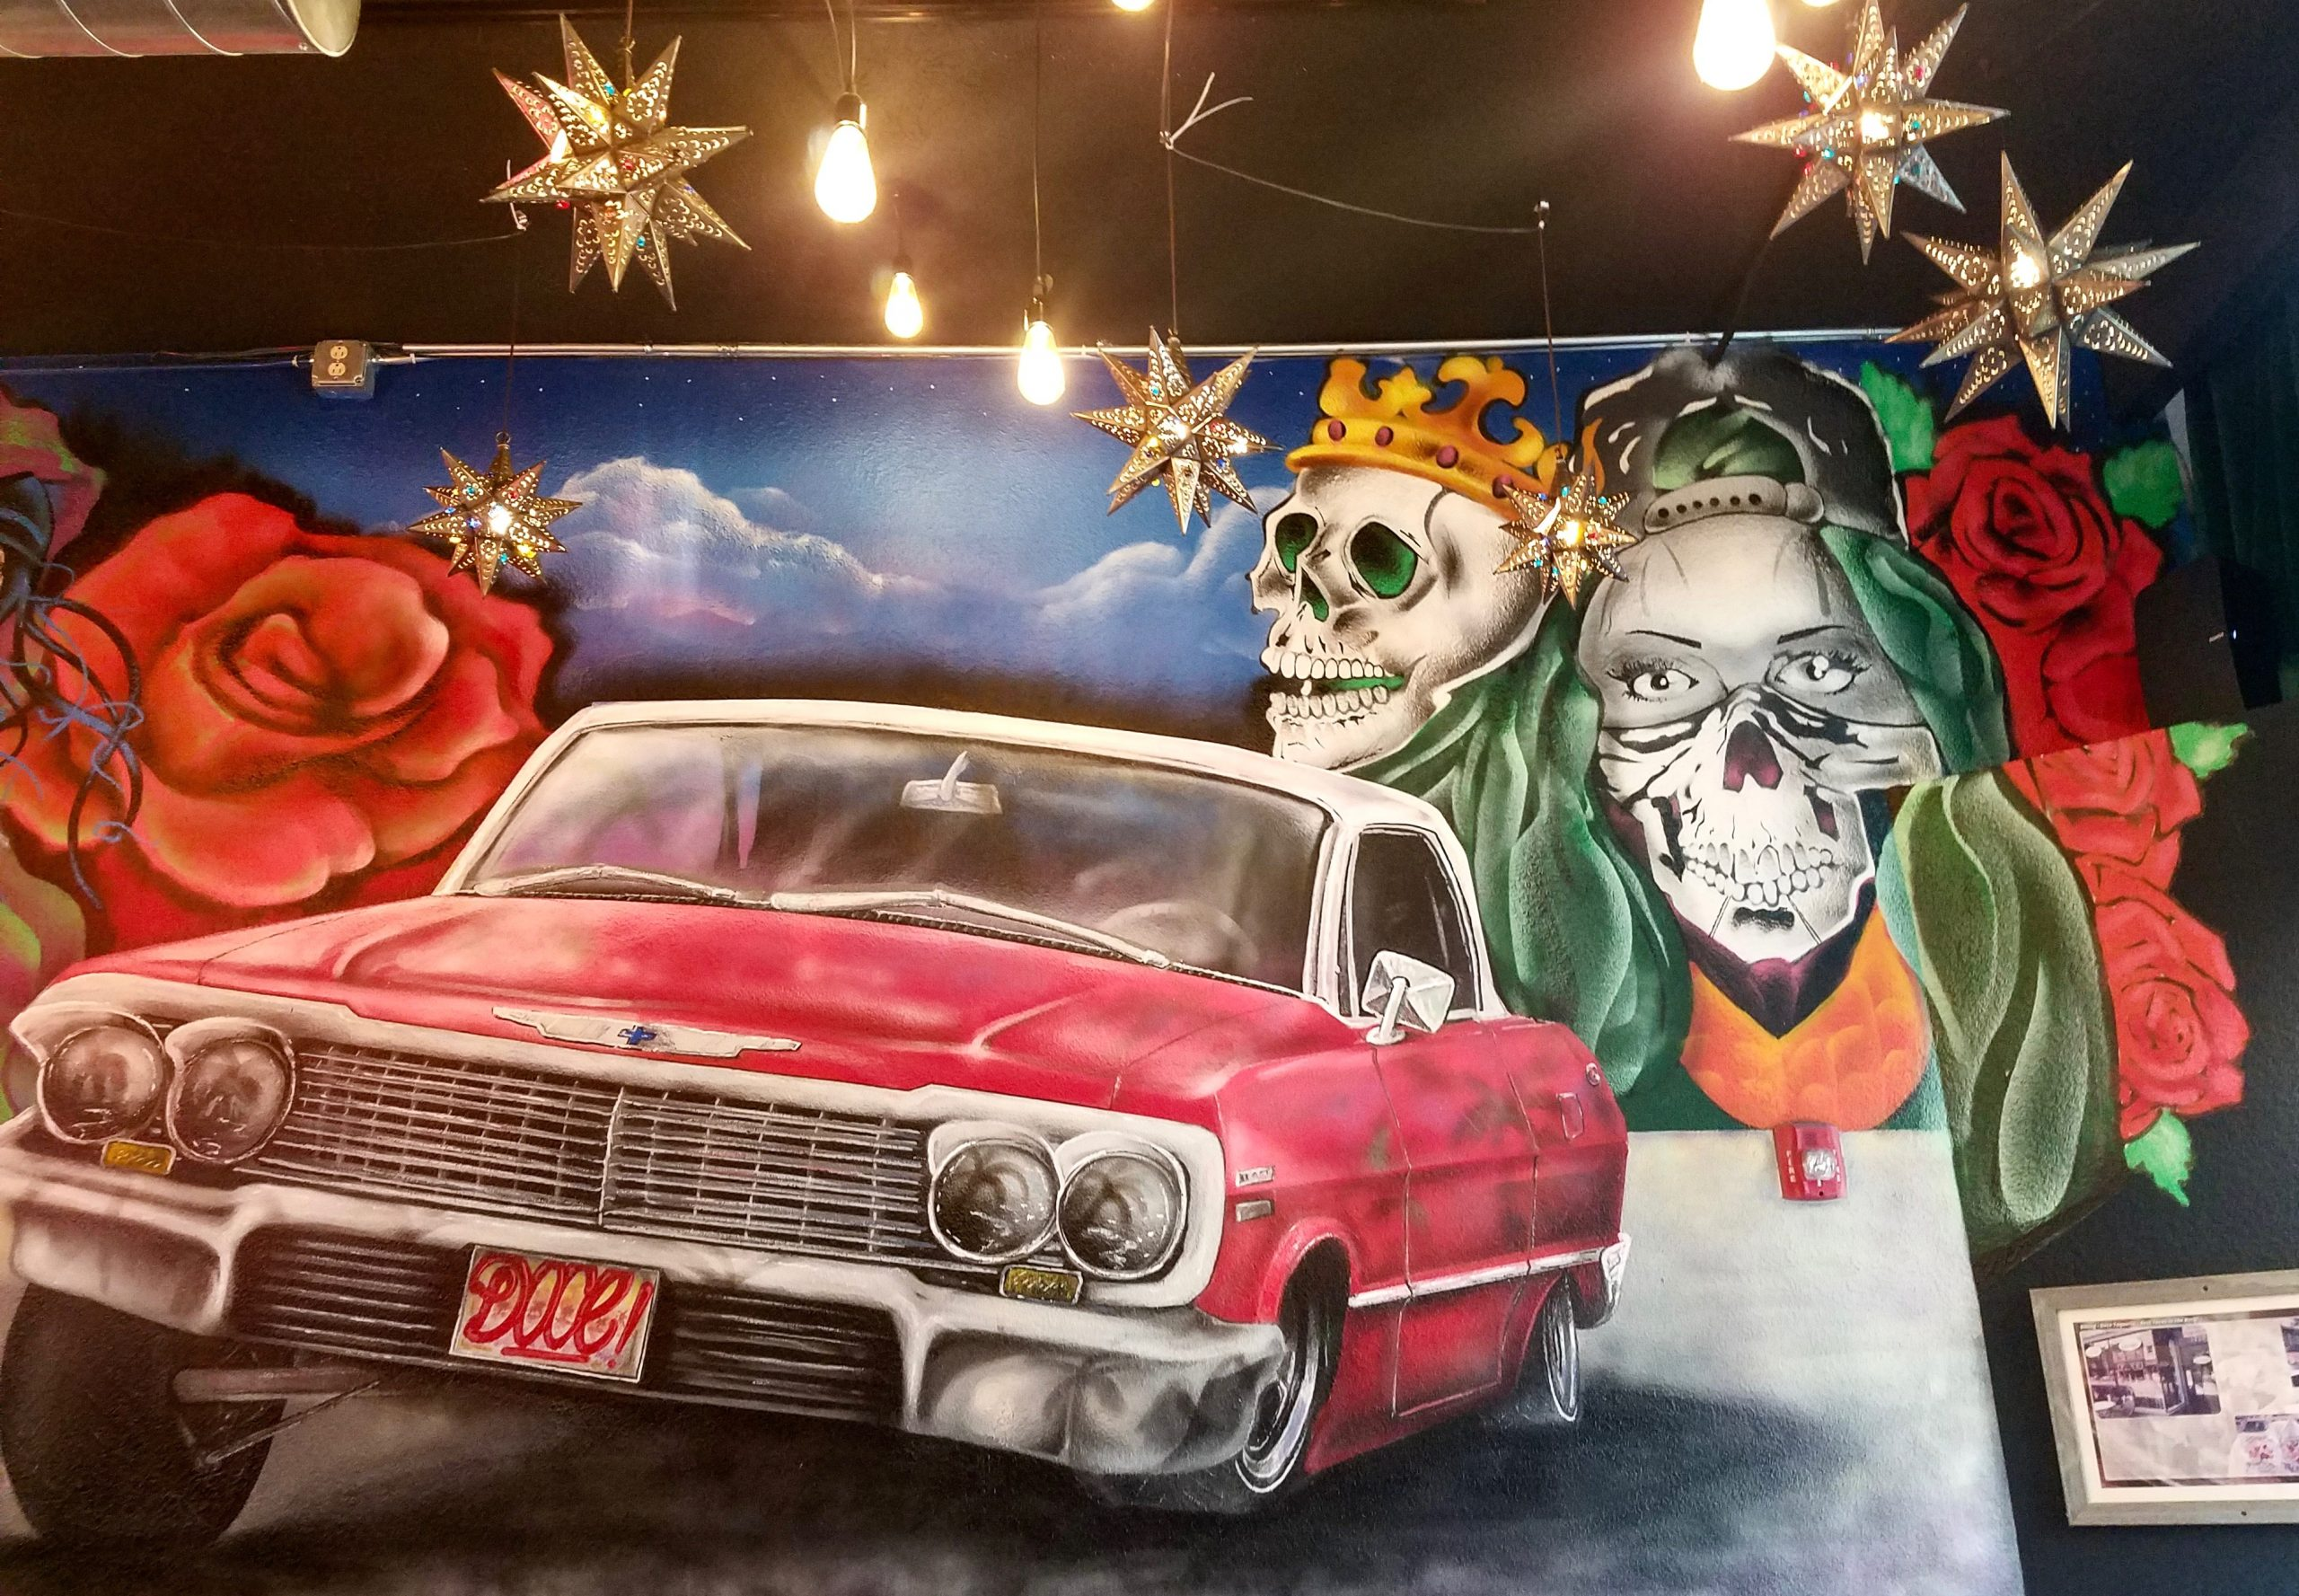 Apocalypse Not! This is taco art, adorning the wall at Doce Taqueria, a suggested spot for low-cost dining. (photo: Rick Handler)